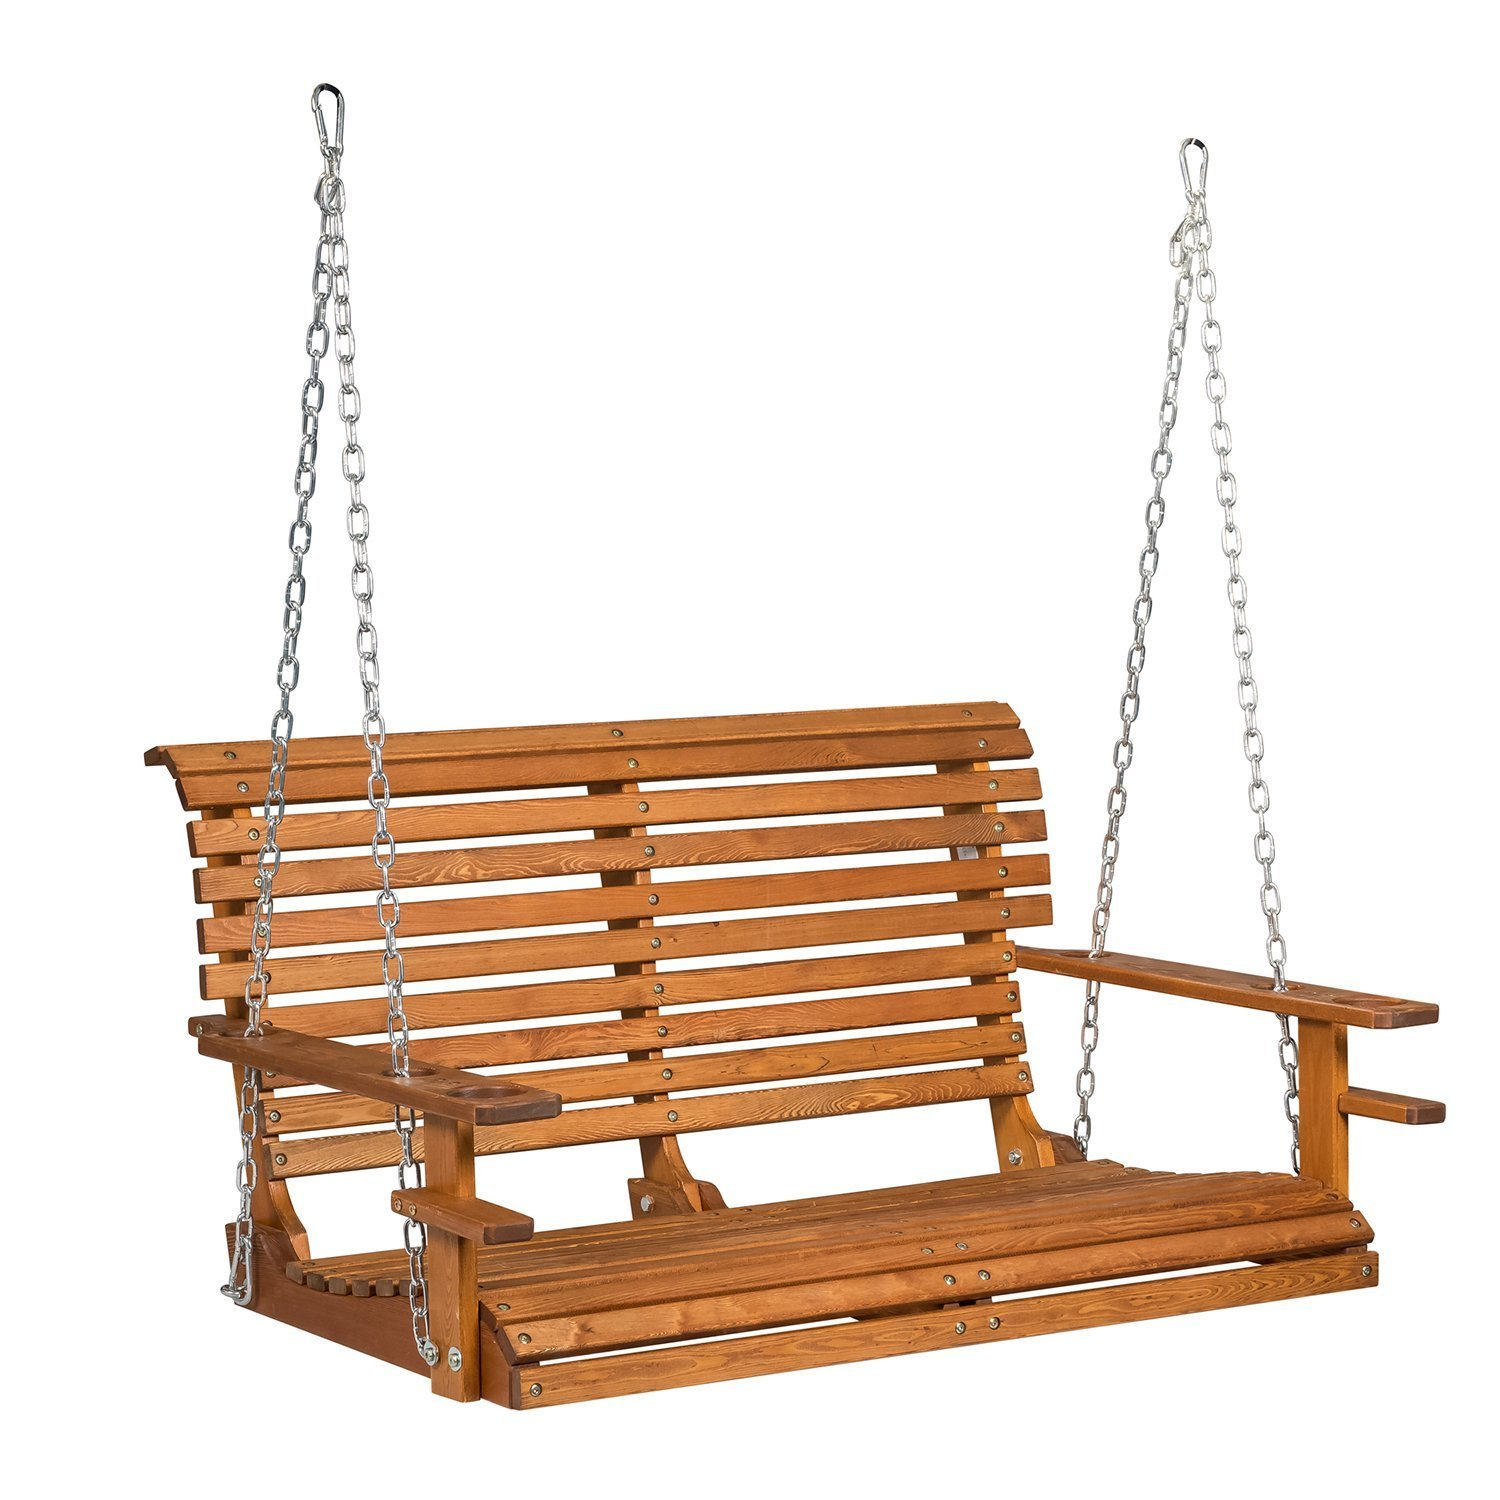 Buy-Hive 4ft Porch Swing Wood Patio Swing Chair Hanging Bench Deck Courtyard w/Cup Holder